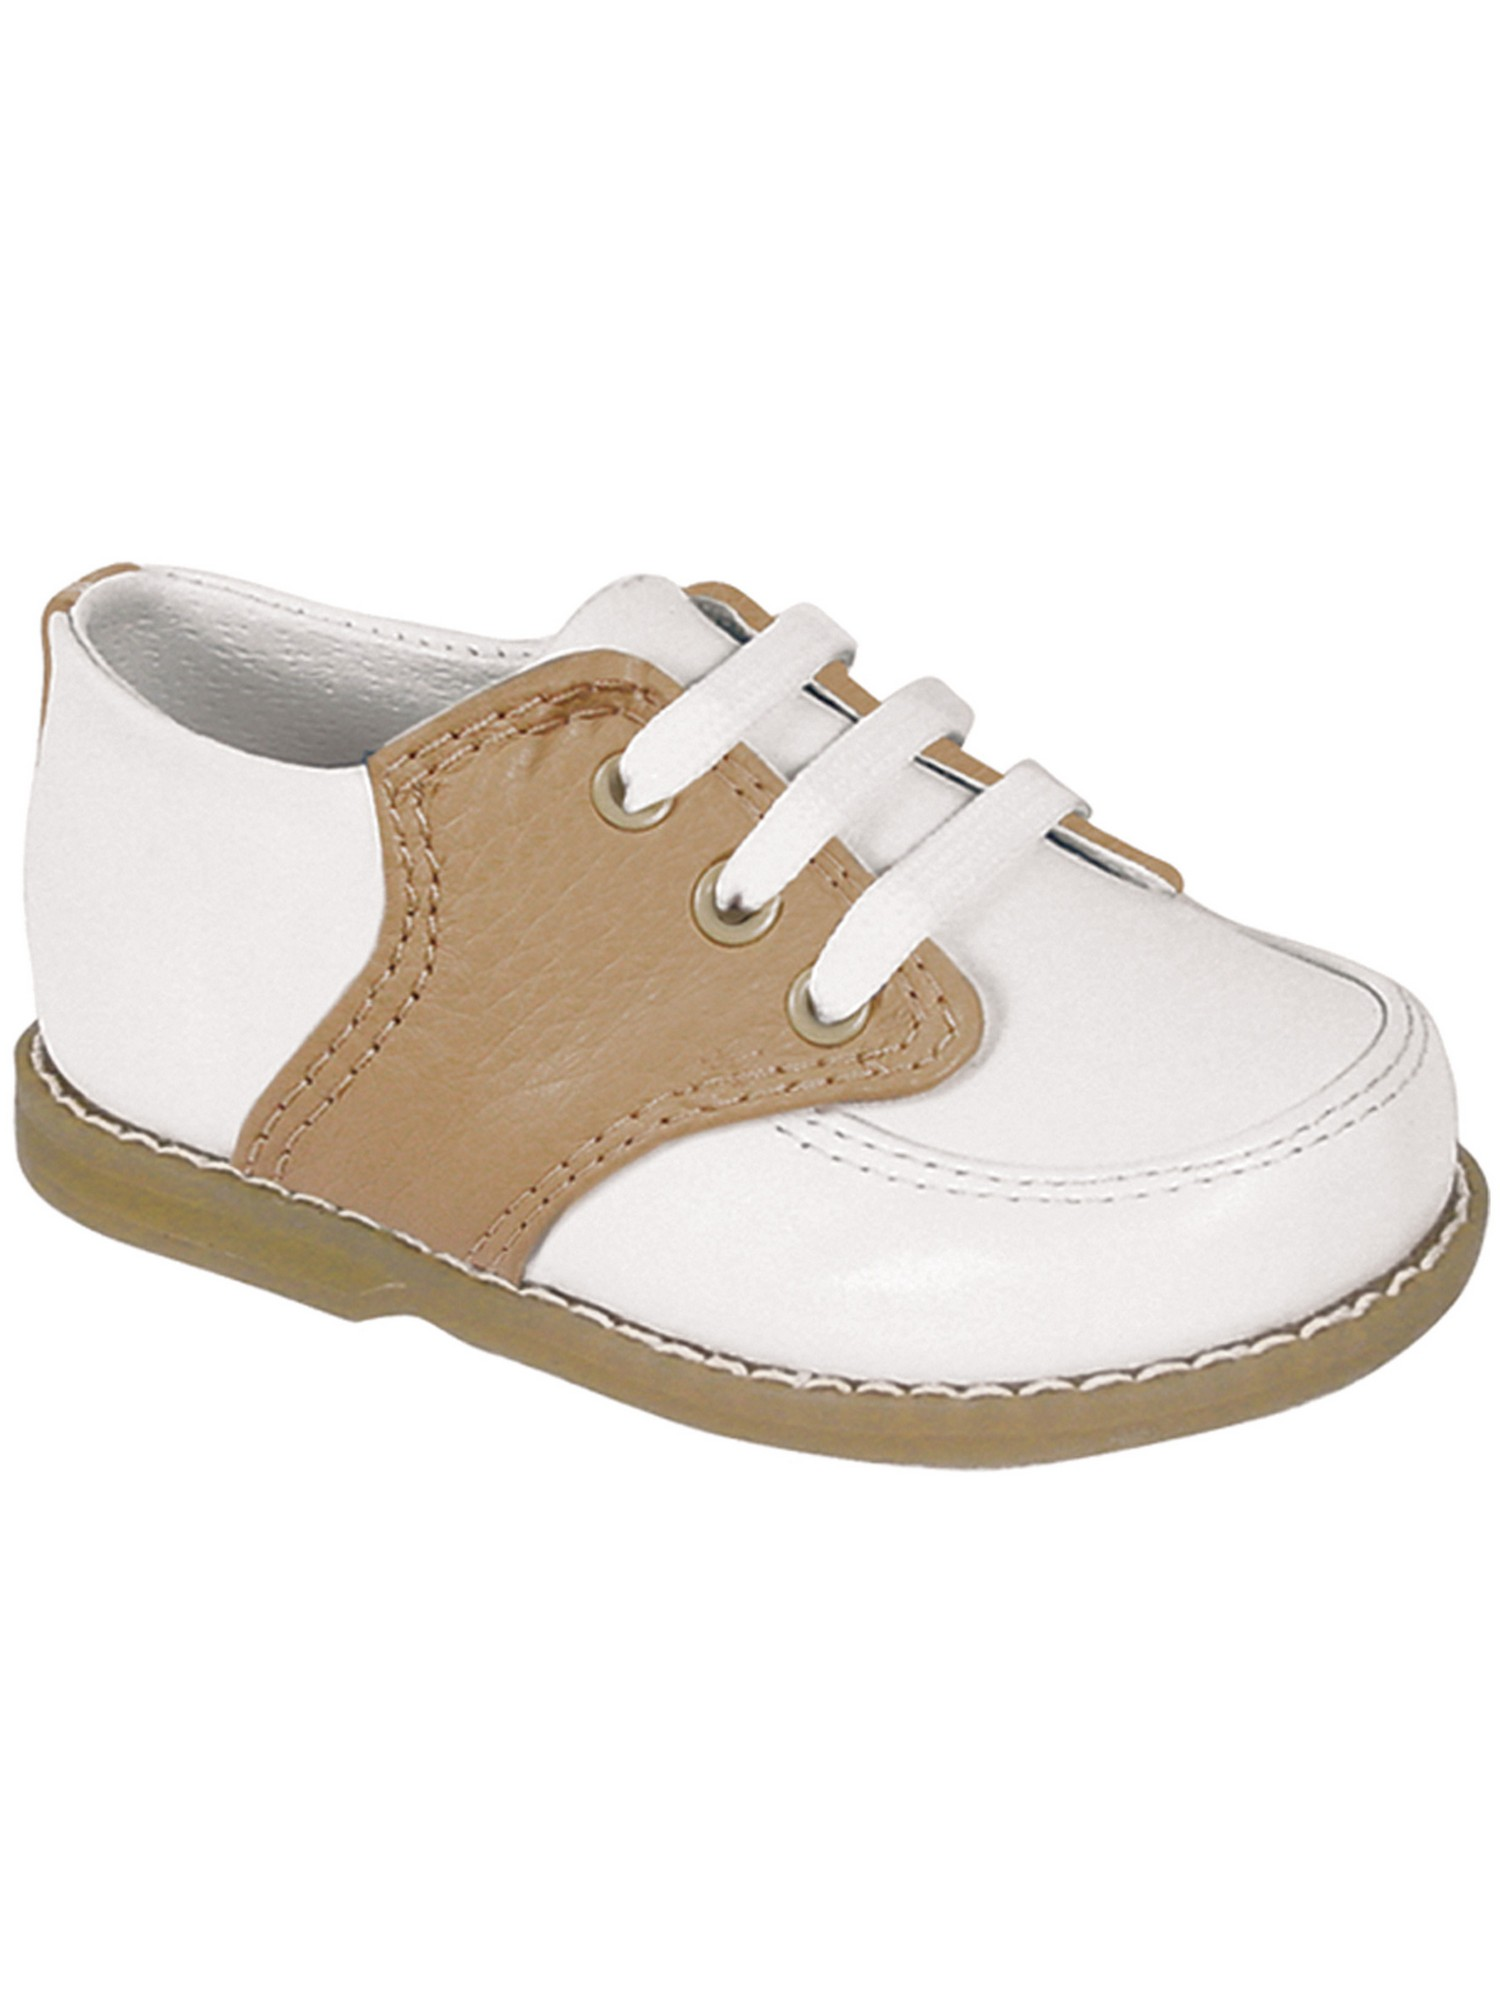 Baby Deer Little Boys White Tan Leather Saddle Oxford ...